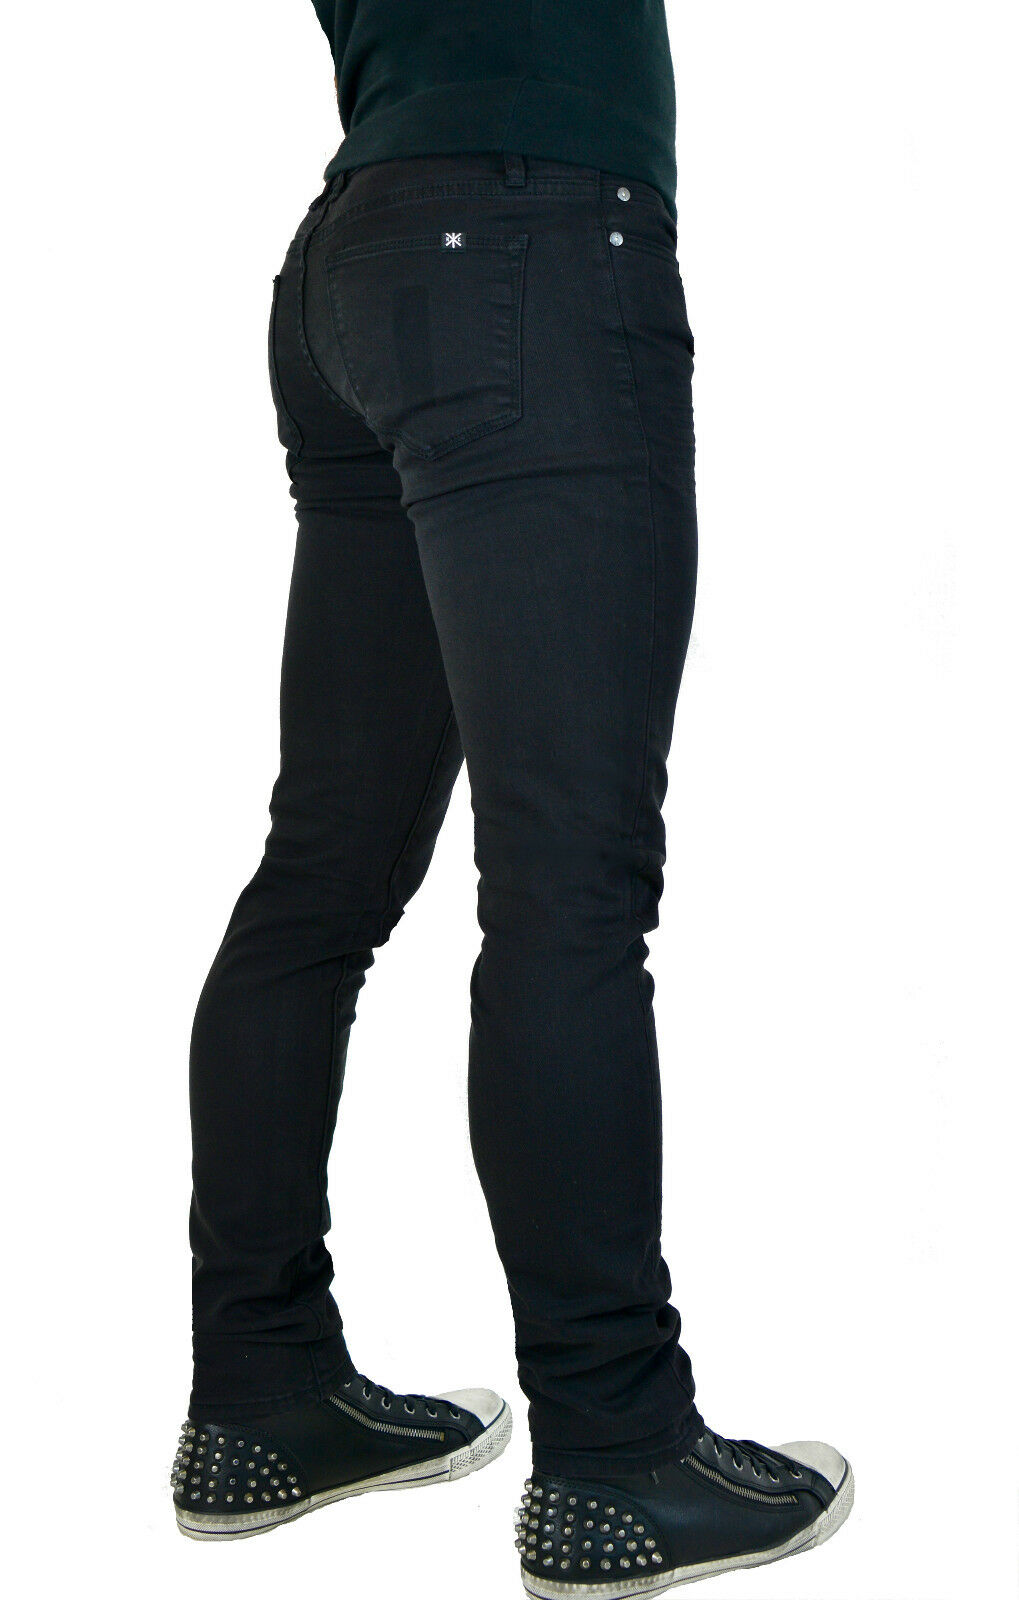 KILL CITY LIP SERVICE GOTHIC PUNK ROCKER JUNKIE SKINNY NEEDLE STAGE JEANS PANTS Clothing, Shoes & Accessories